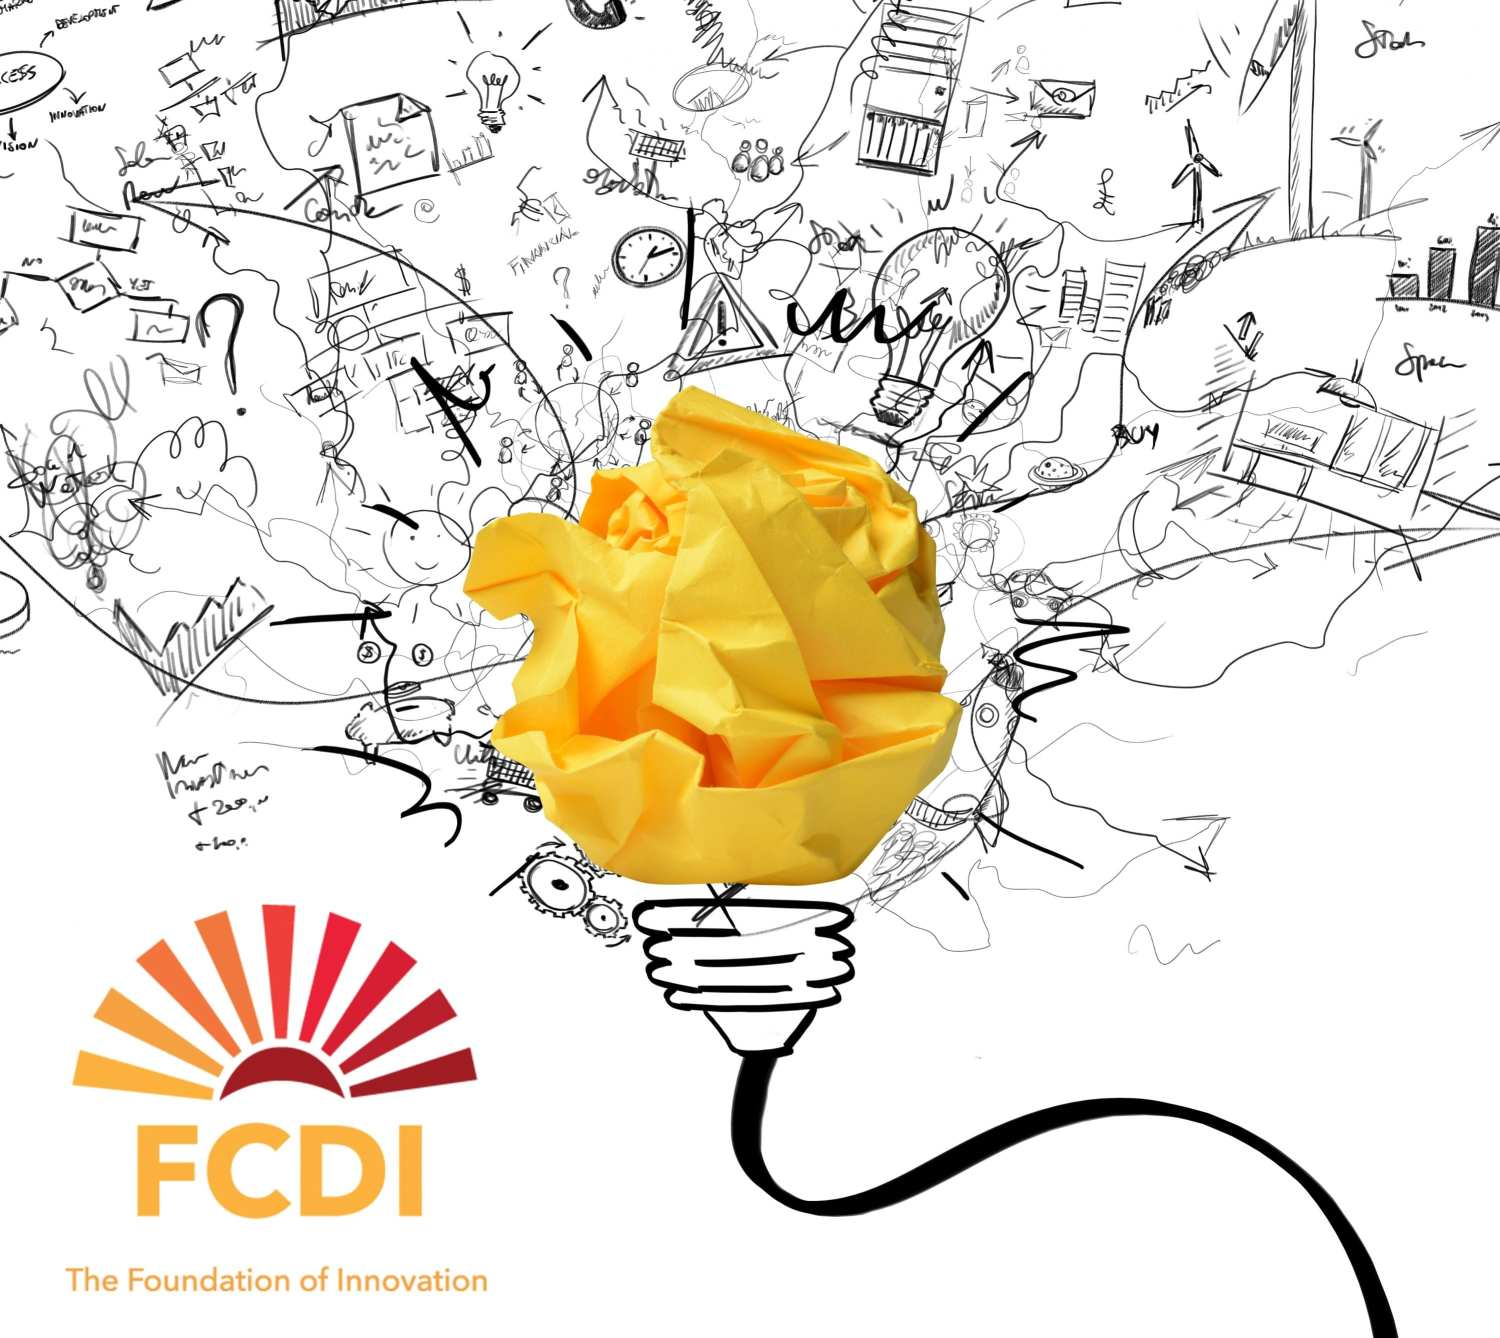 FCDI - THE FOUNDATION OF INNOVATION with logo